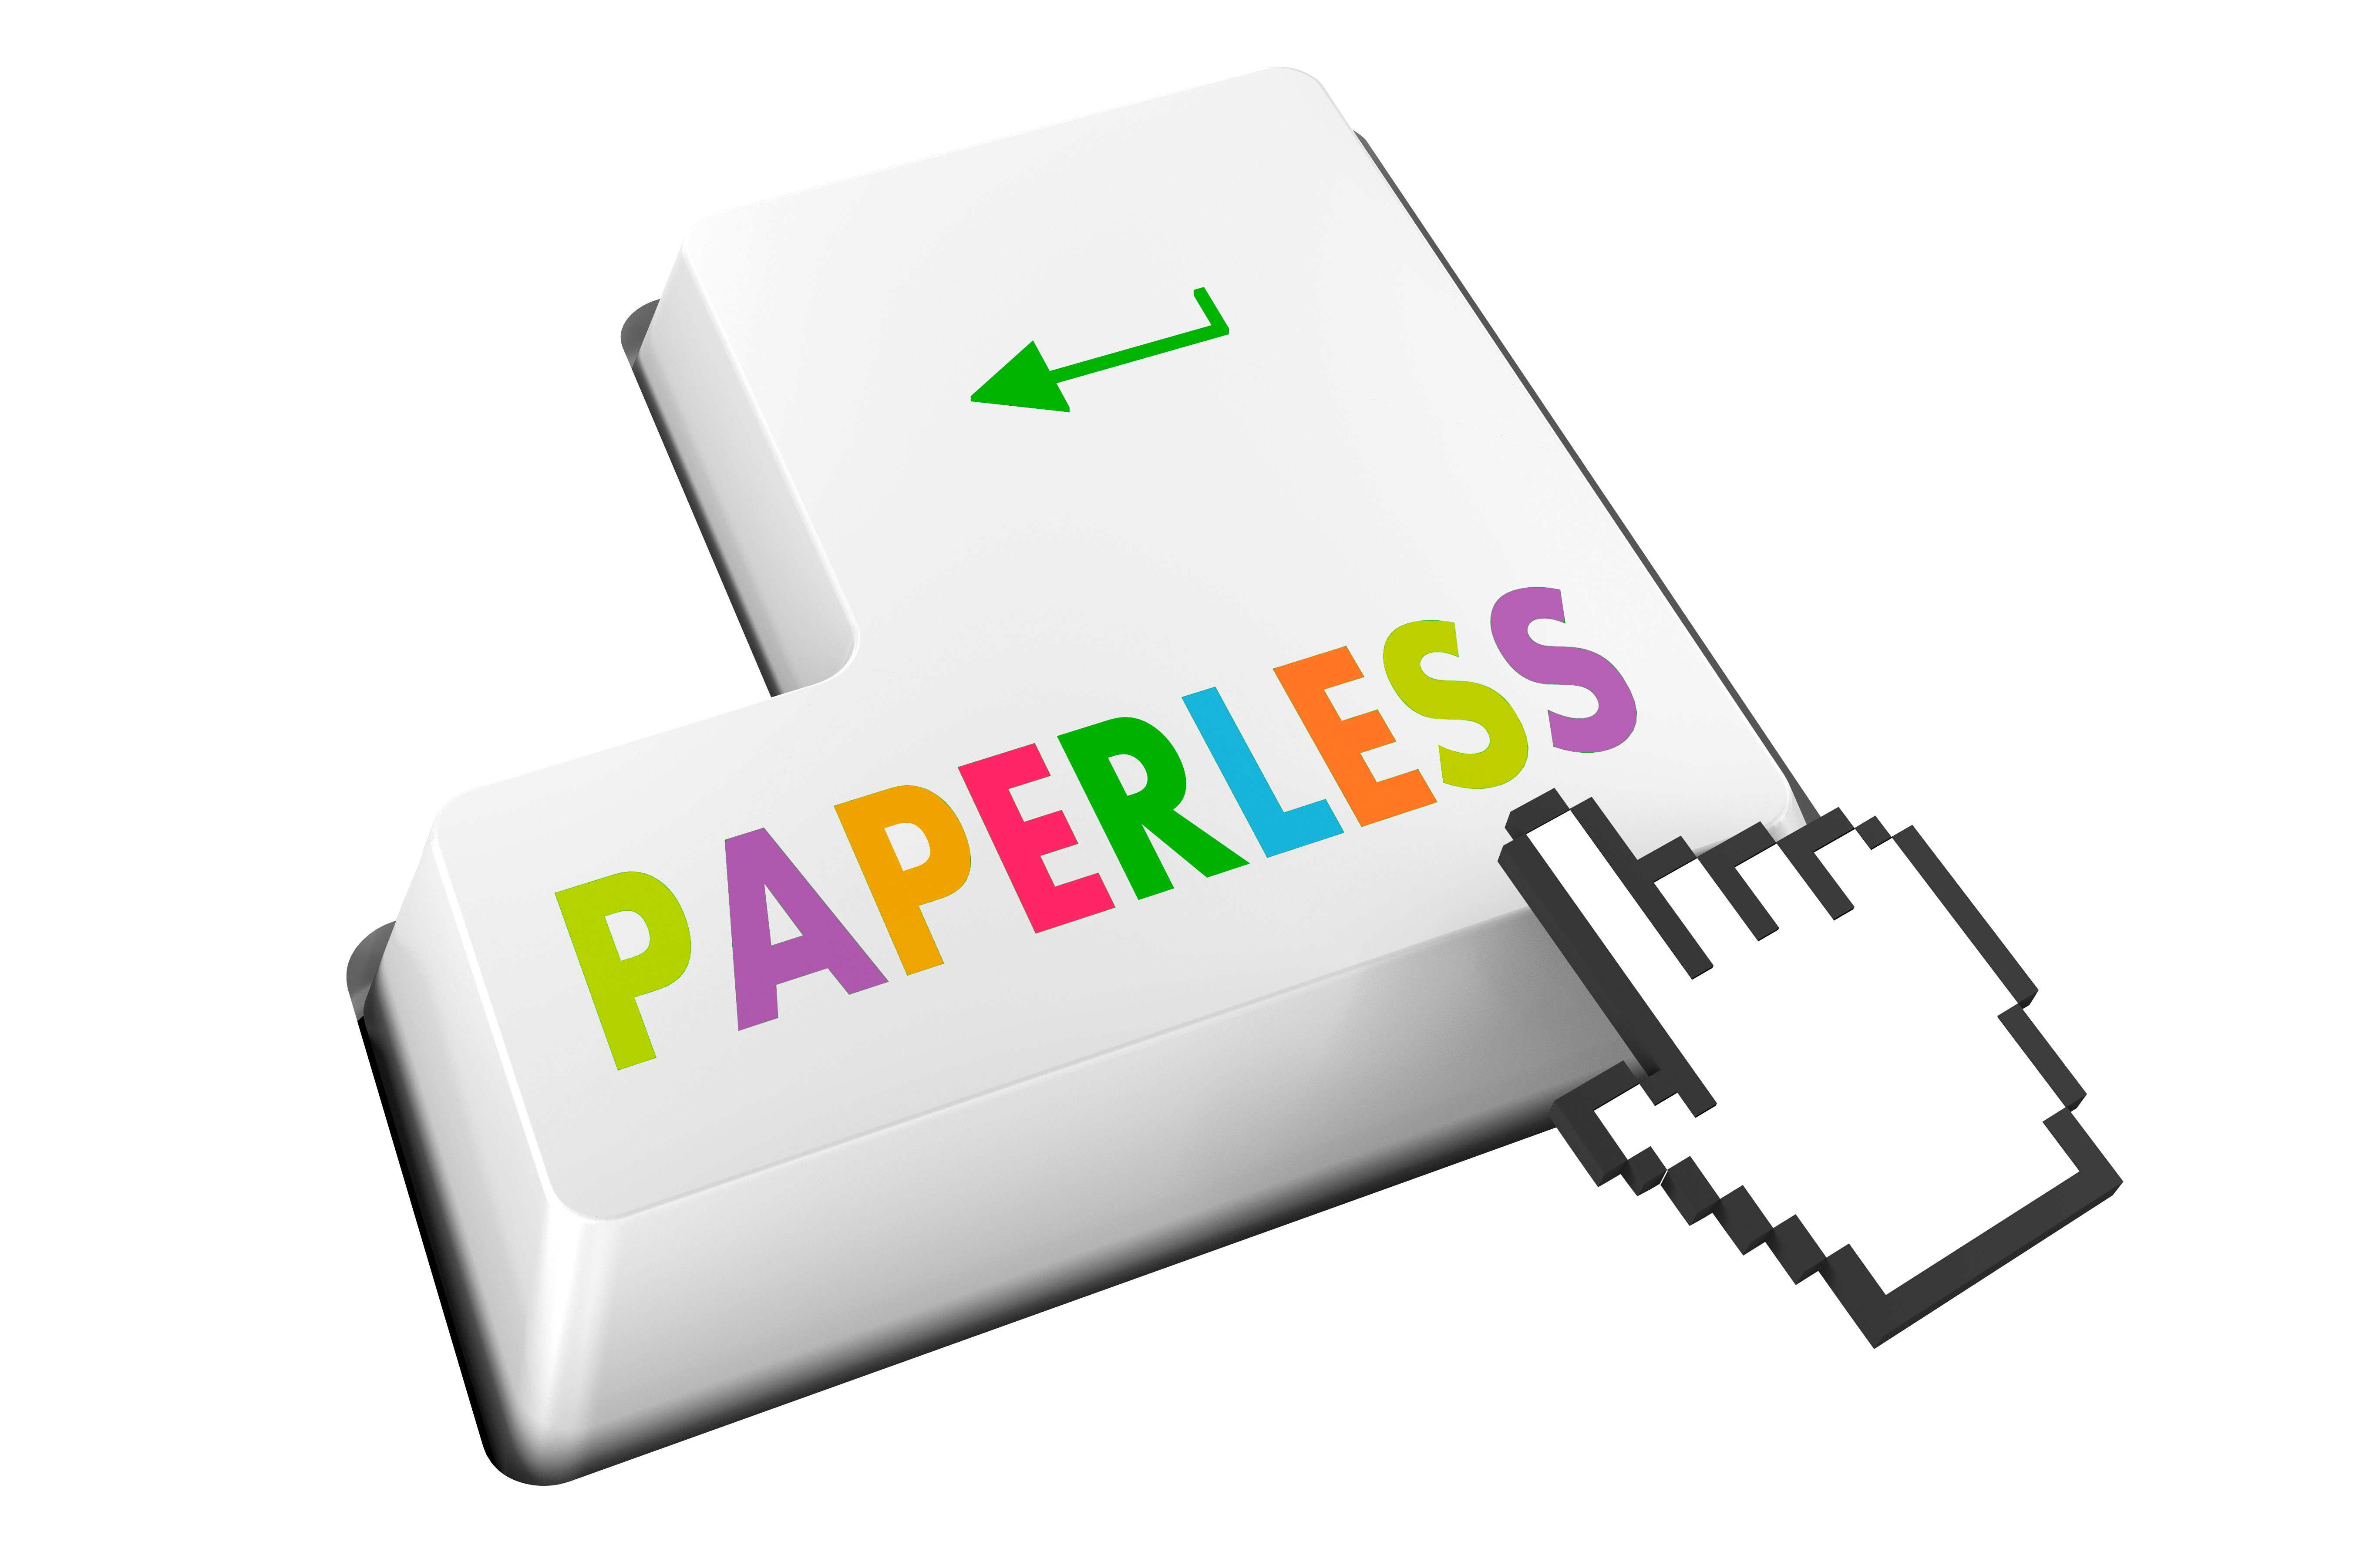 Paperless pay best buy